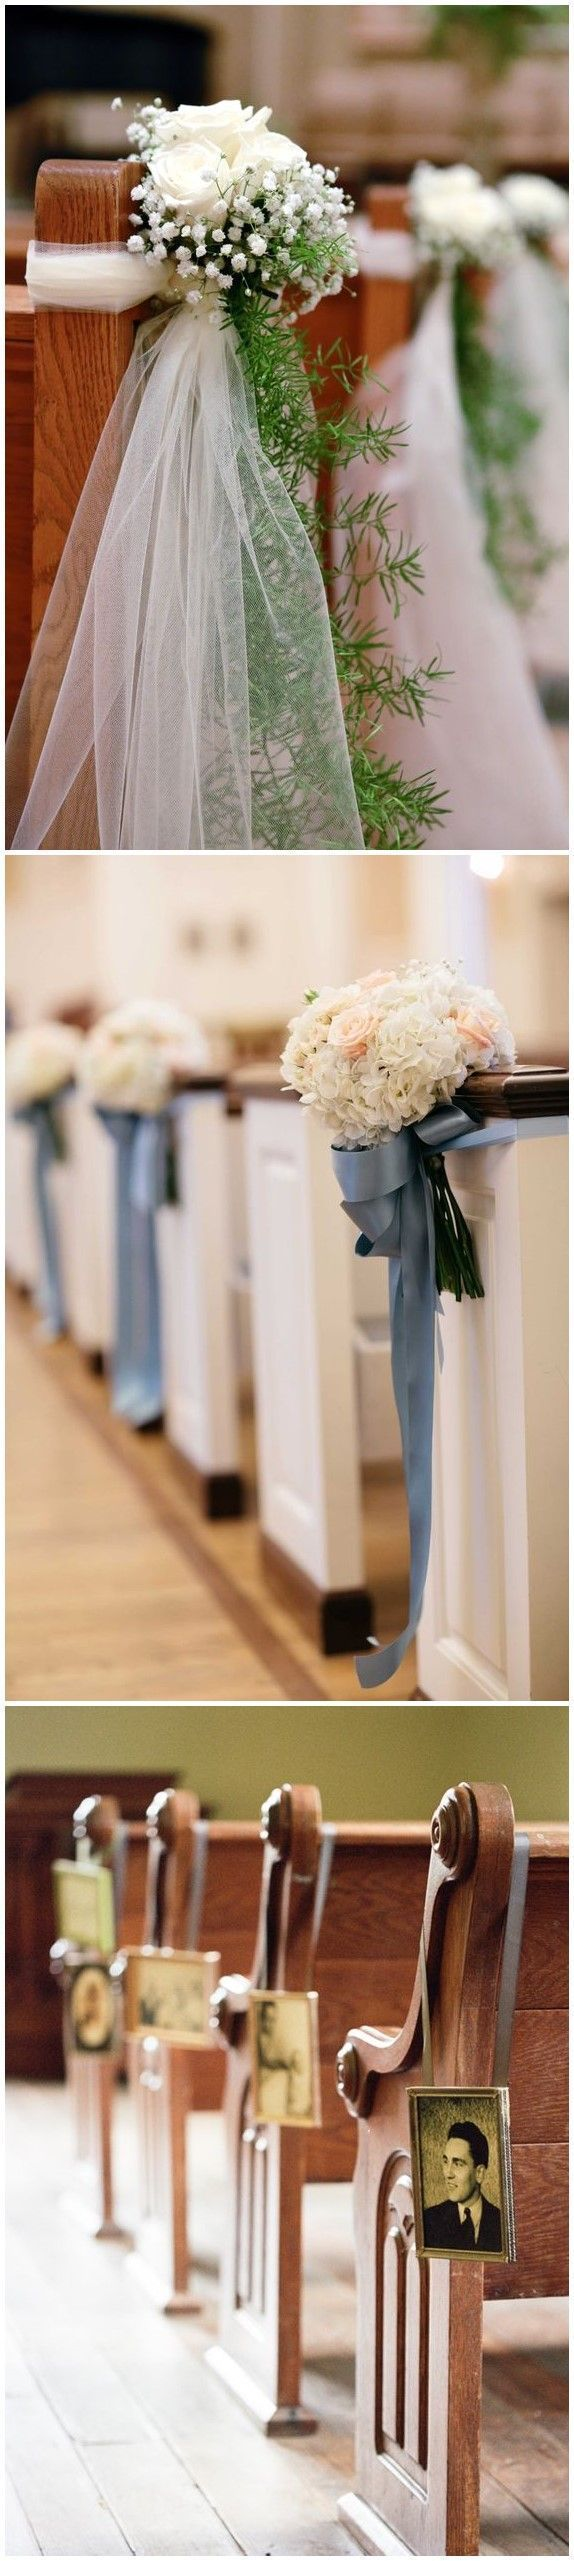 Wedding Decorations » 21 Stunning Church Wedding Aisle Decoration Ideas to Steal » ❤️ See more: http://www.weddinginclude.com/2017/05/stunning-church-wedding-aisle-decoration-ideas-to-steal/ #weddingdecoration